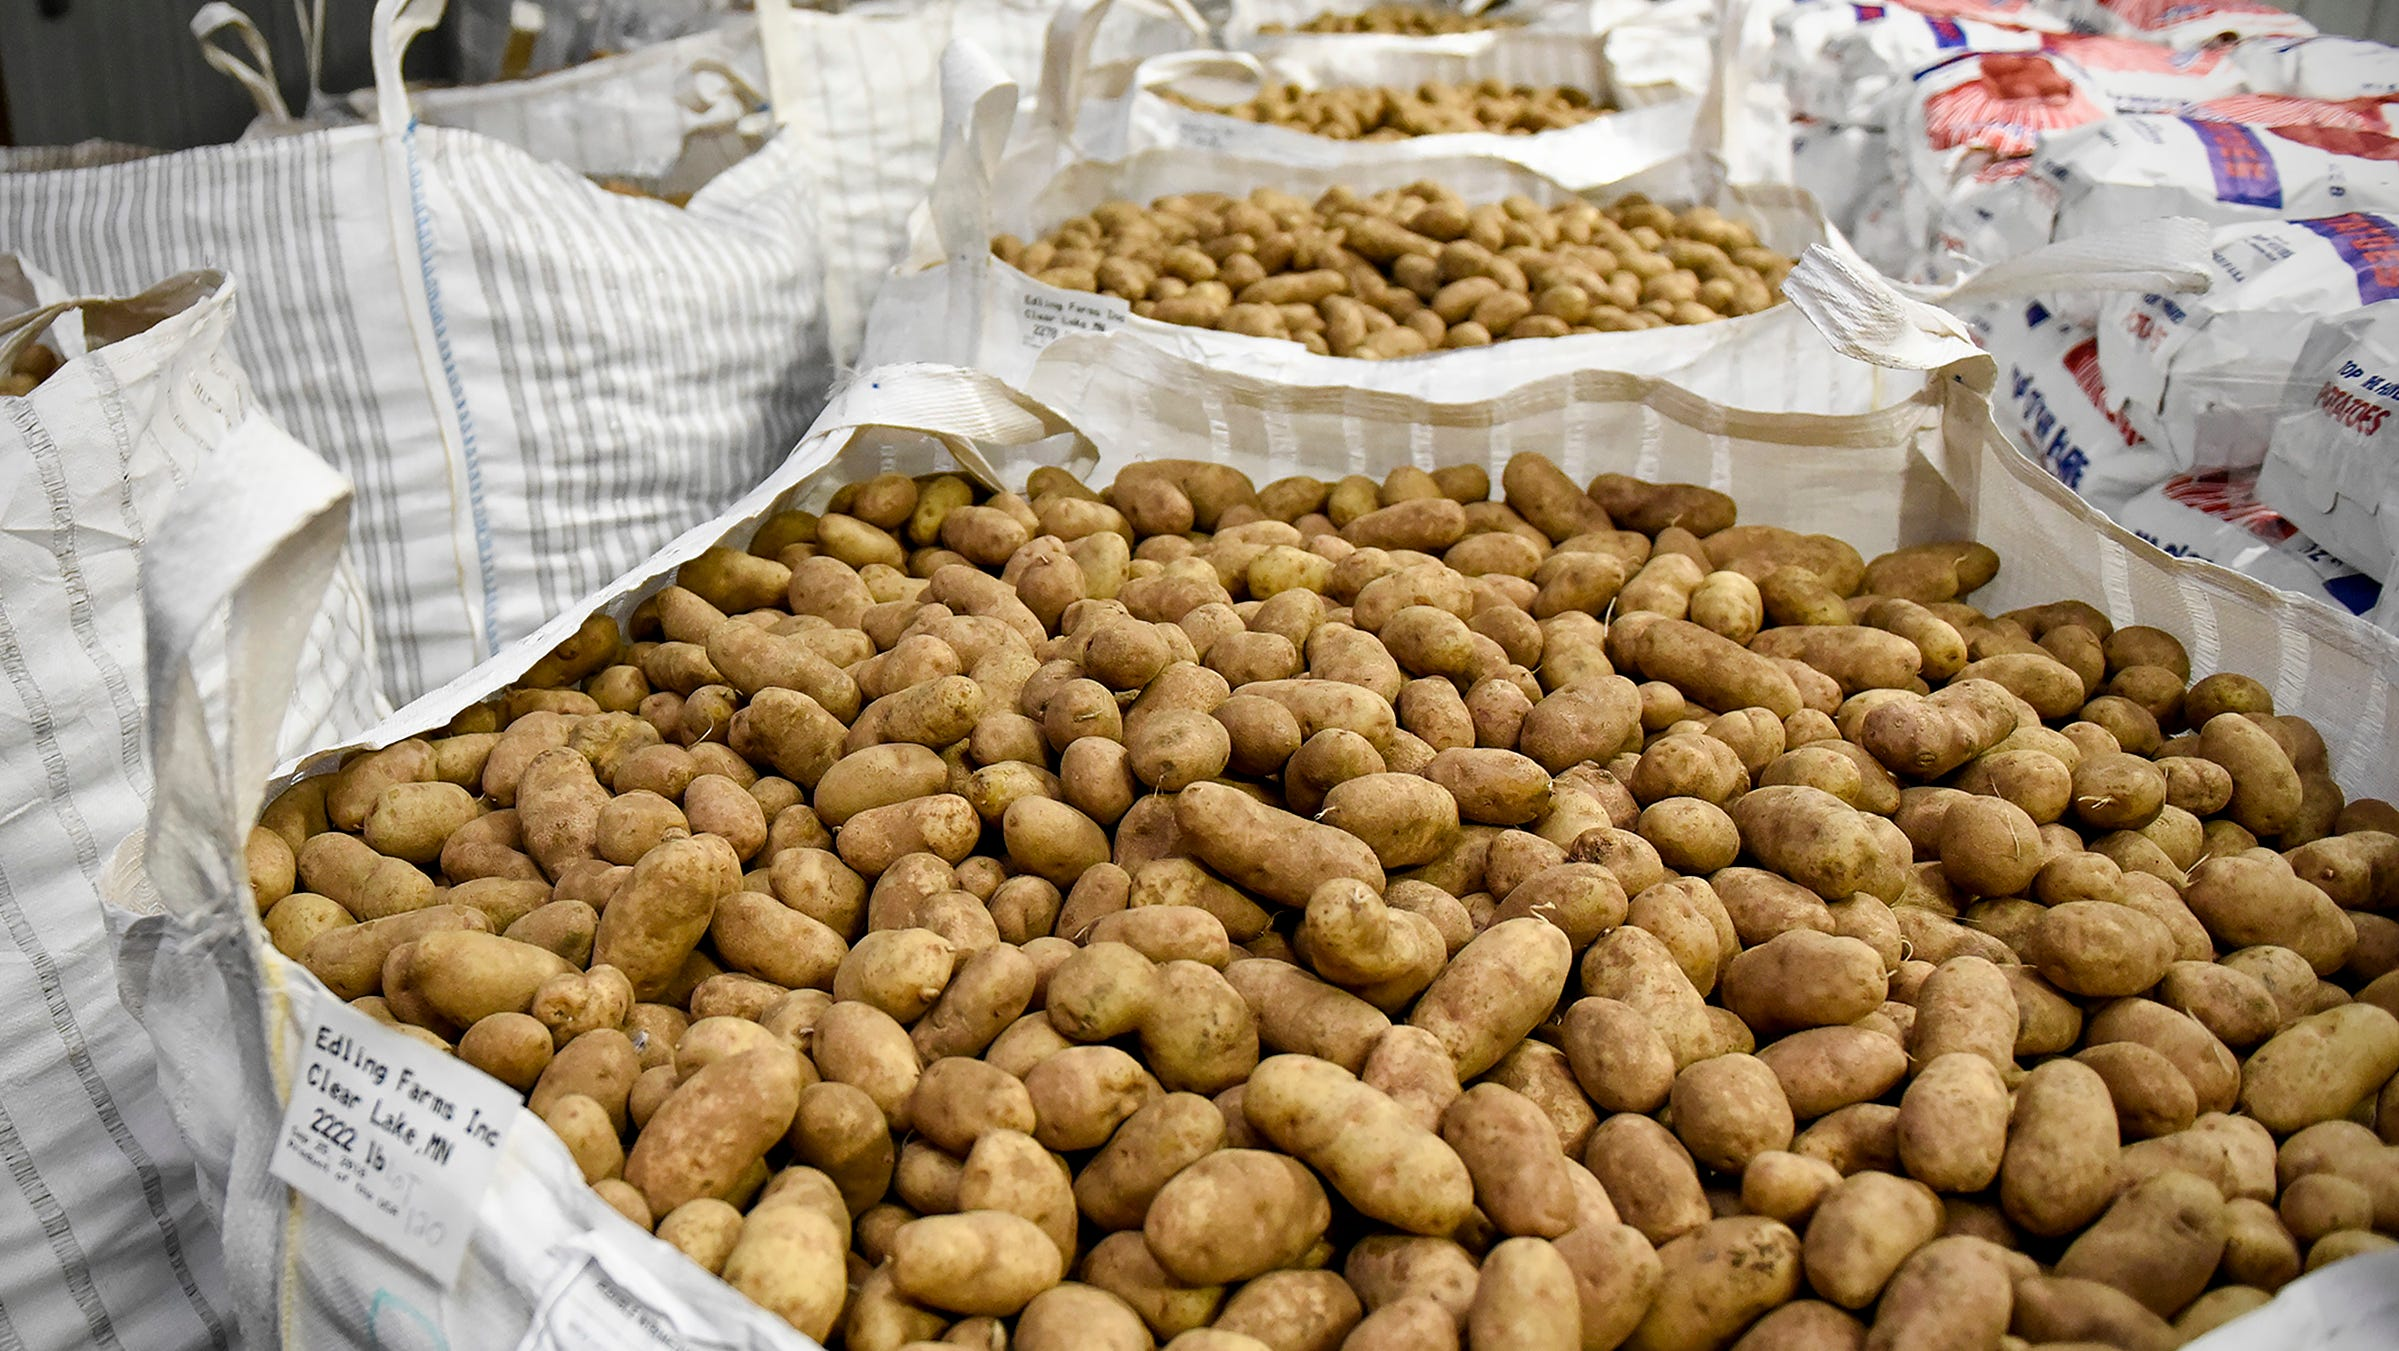 Edling Farms, Clear Lake, donated about 36,000 pounds of potatoes Monday, Nov. 12, to Union Gospel Mission in St. Paul. The potatoes will feed about 60,000 people on Thanksgiving.